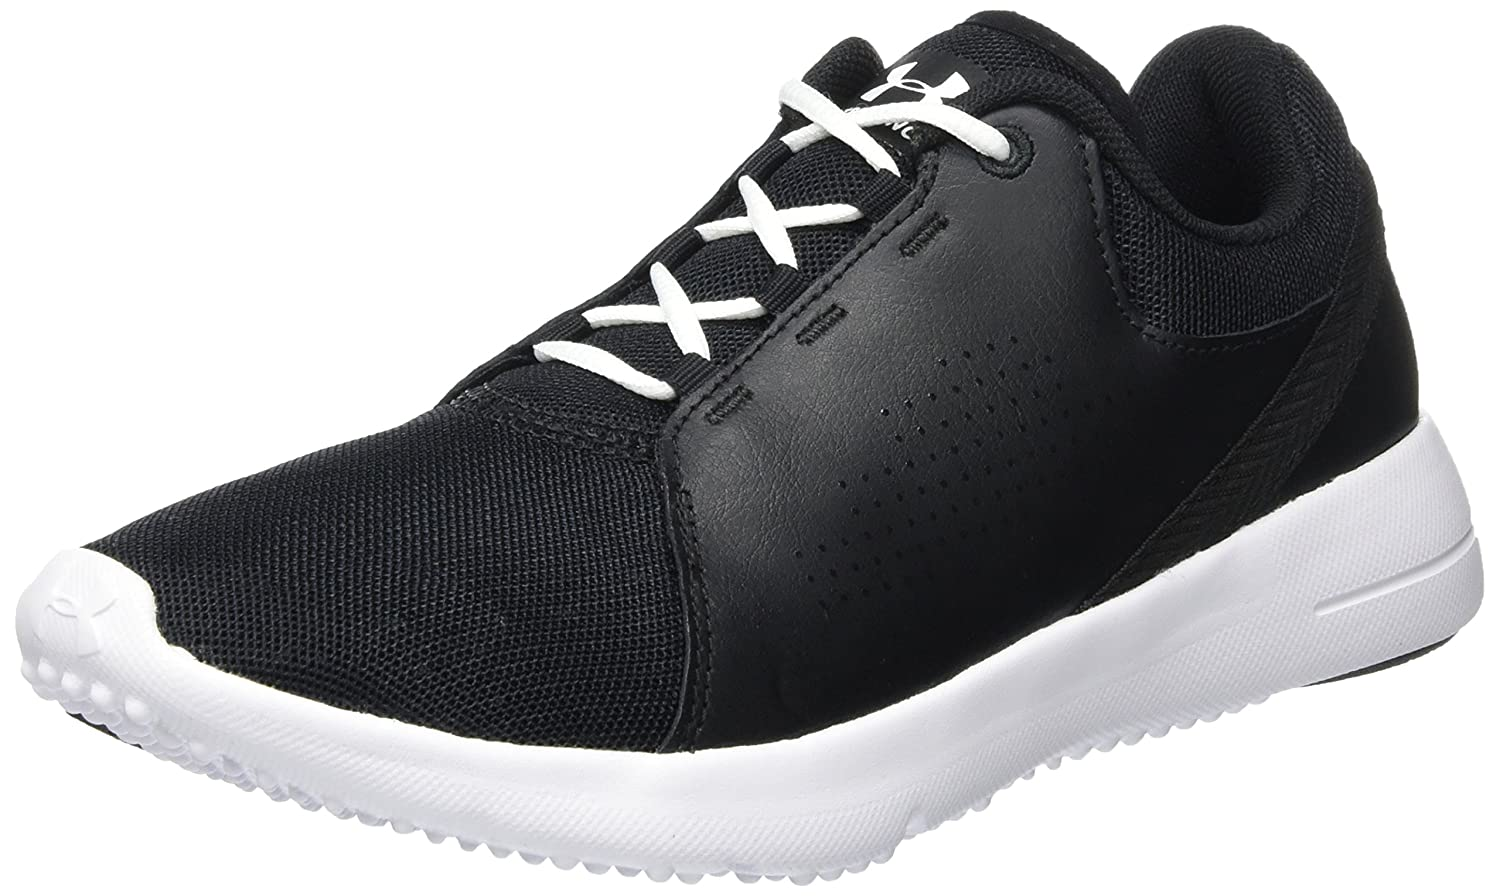 Under Armour Women's Squad Sneaker, Rhino Gray/White/Cape Coral B01N7ID0KS 9 B(M) US|Black/White/White